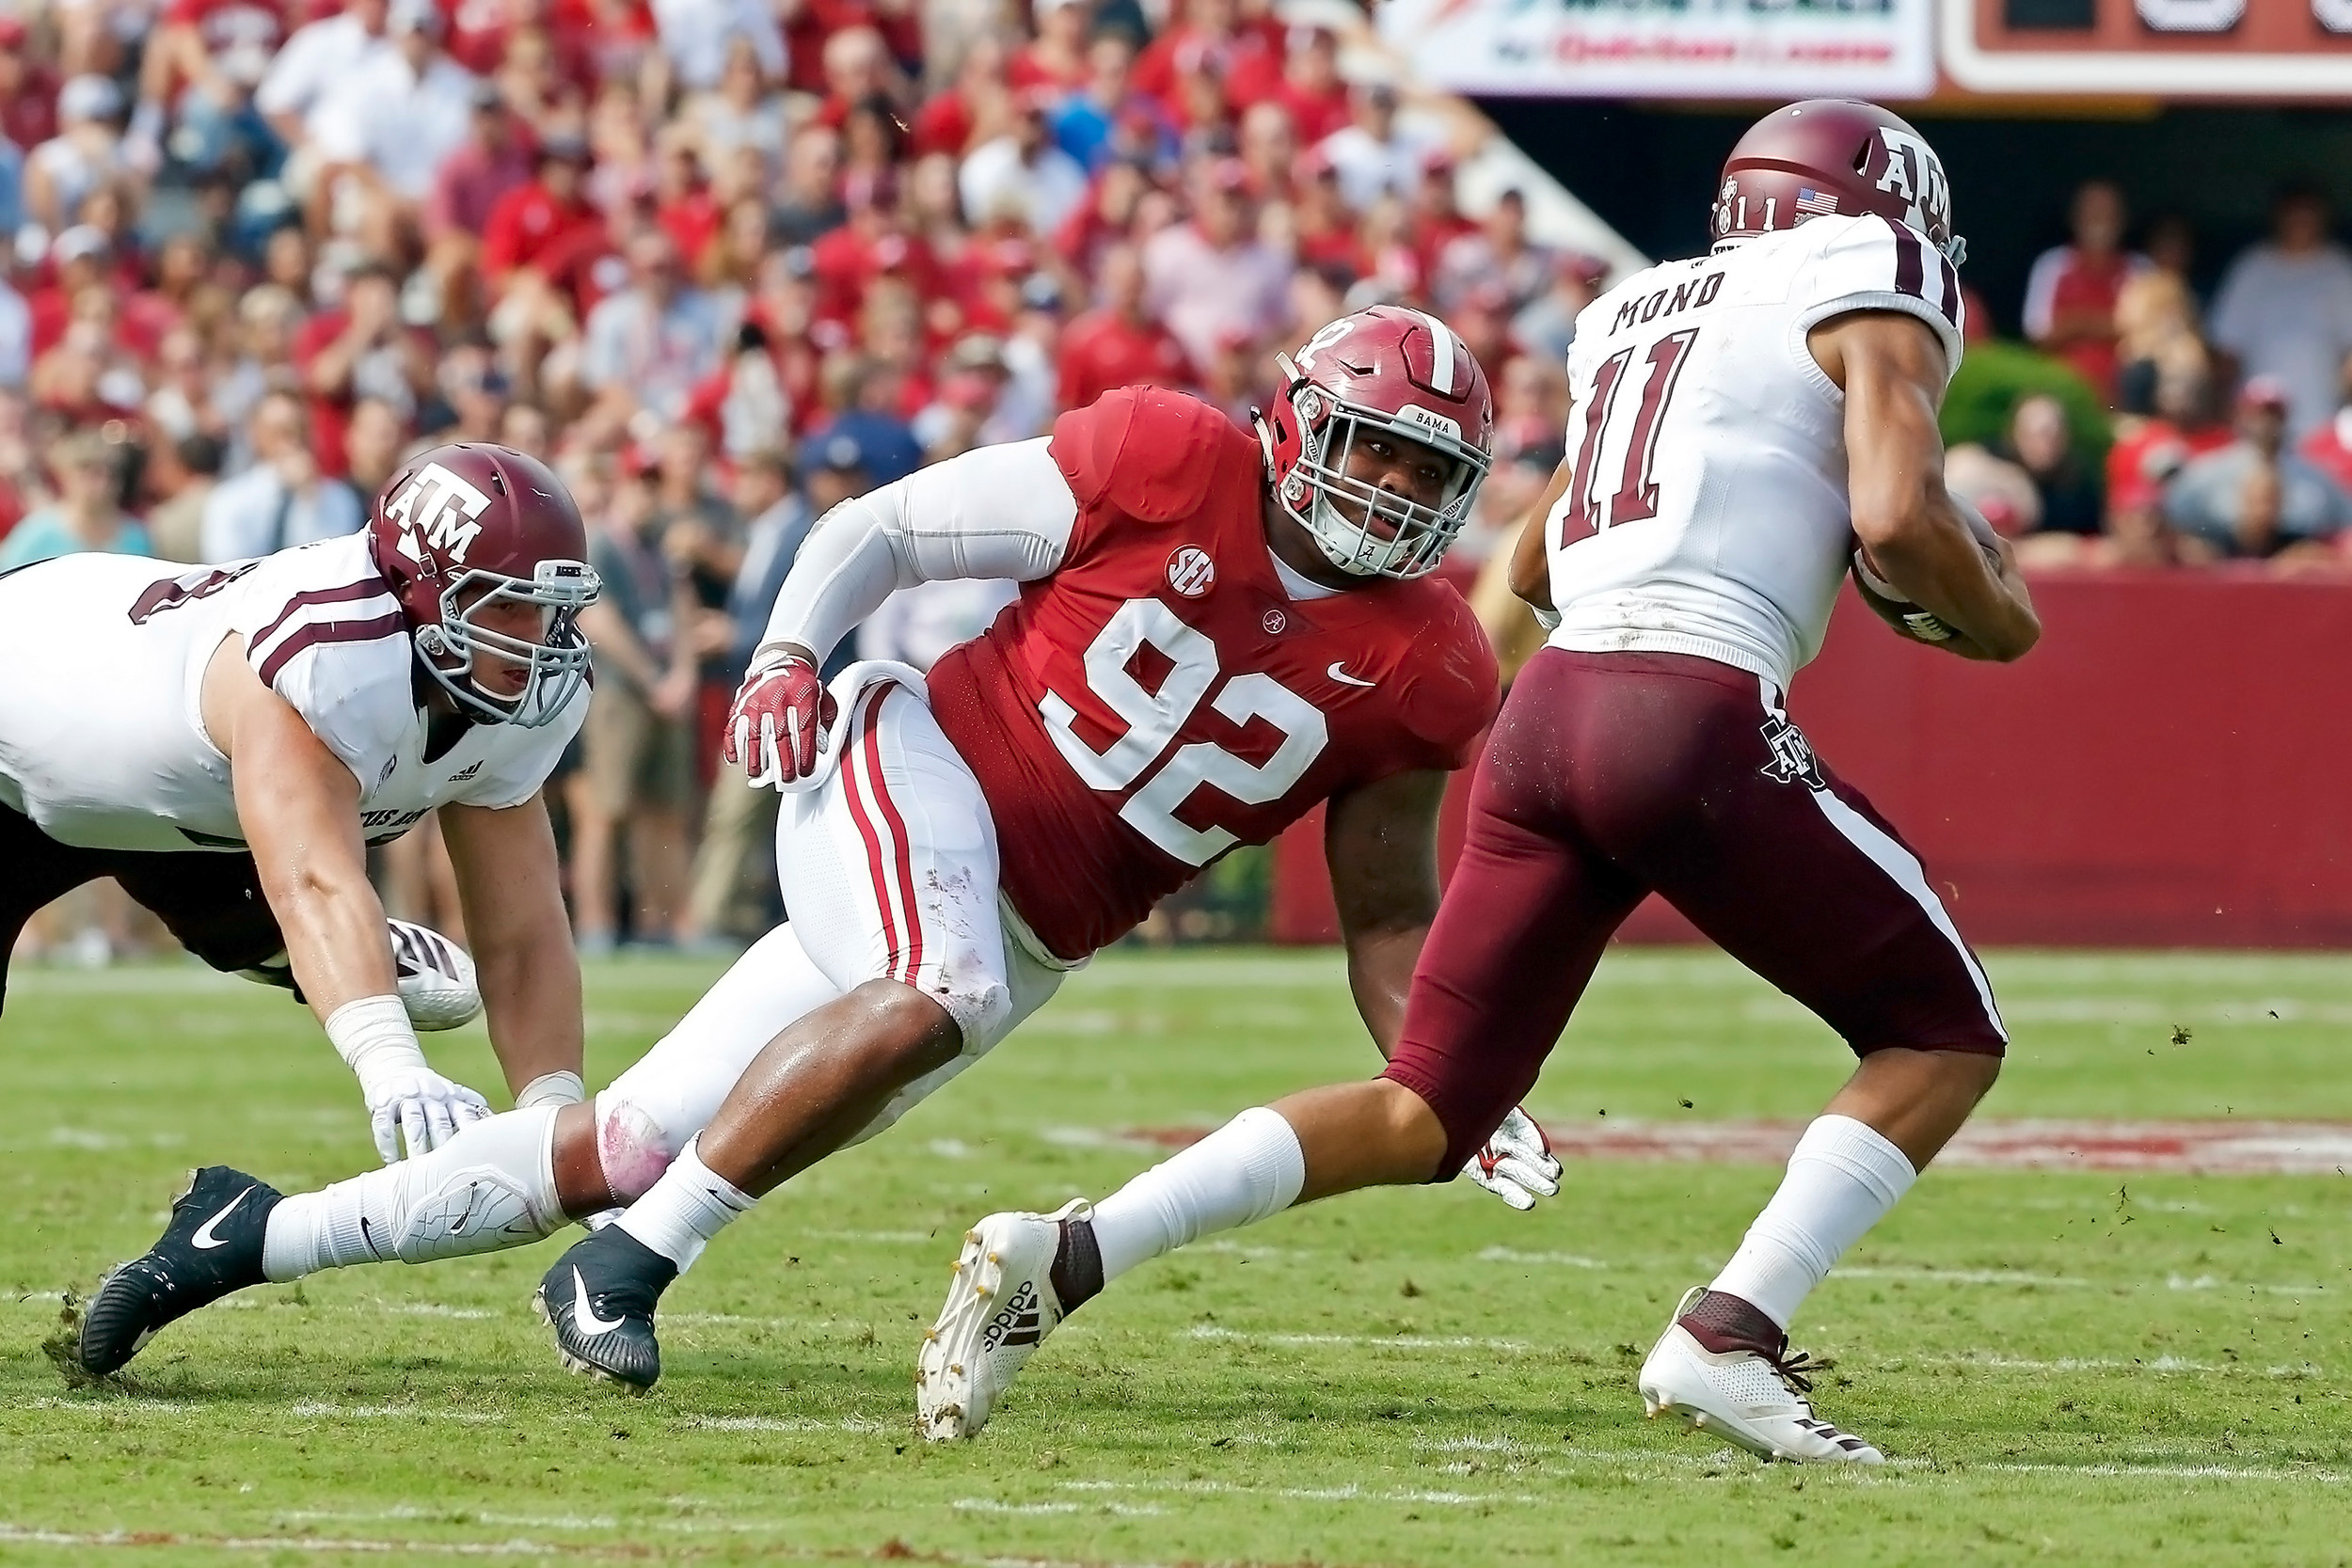 Alabama Crimson Tide defensive lineman Quinnen Williams (92) puts pressure on Texas A&M Aggies quarterback Kellen Mond (11) during the game between the Texas A&M Aggies and the University of Alabama Crimson Tide at Bryant-Denny Stadium.  Jason Clark / Daily Mountain Eagle